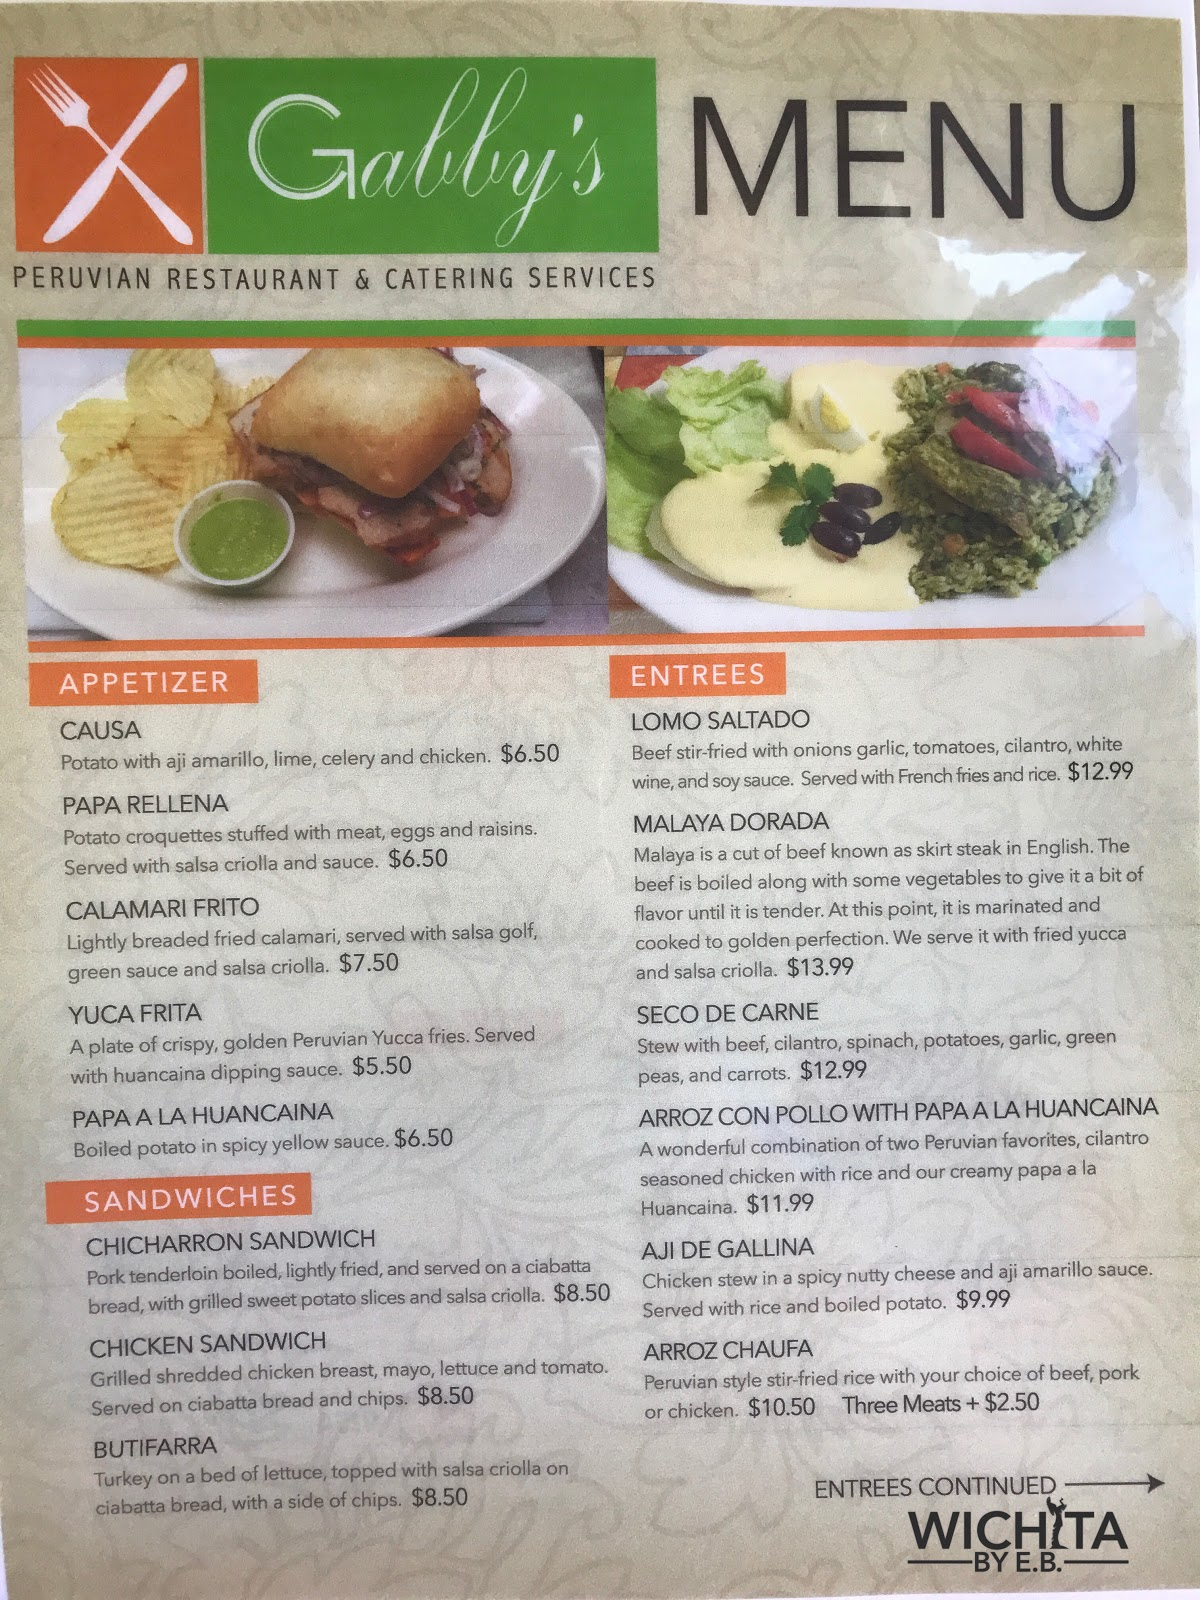 Gabbys peruvian restaurant and catering has a new menu and its they will occasionally have weekend specials for items that dont appear regularly on the menu on sundays they offer a peruvian breakfast special forumfinder Image collections